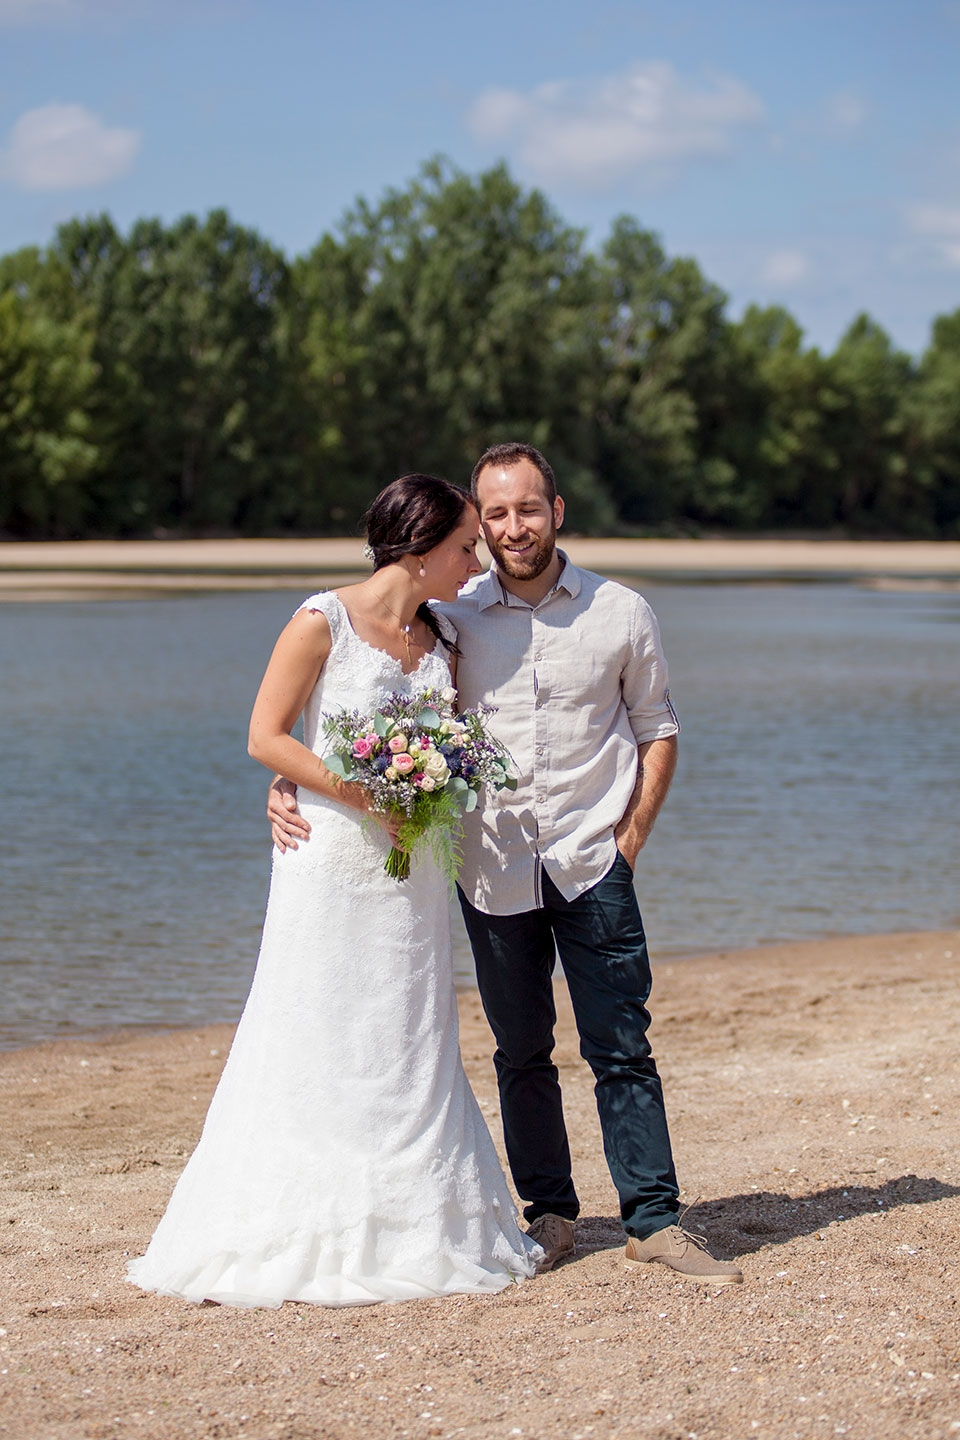 particuliers-evenements-mariage-oui-carla&jeremy-34